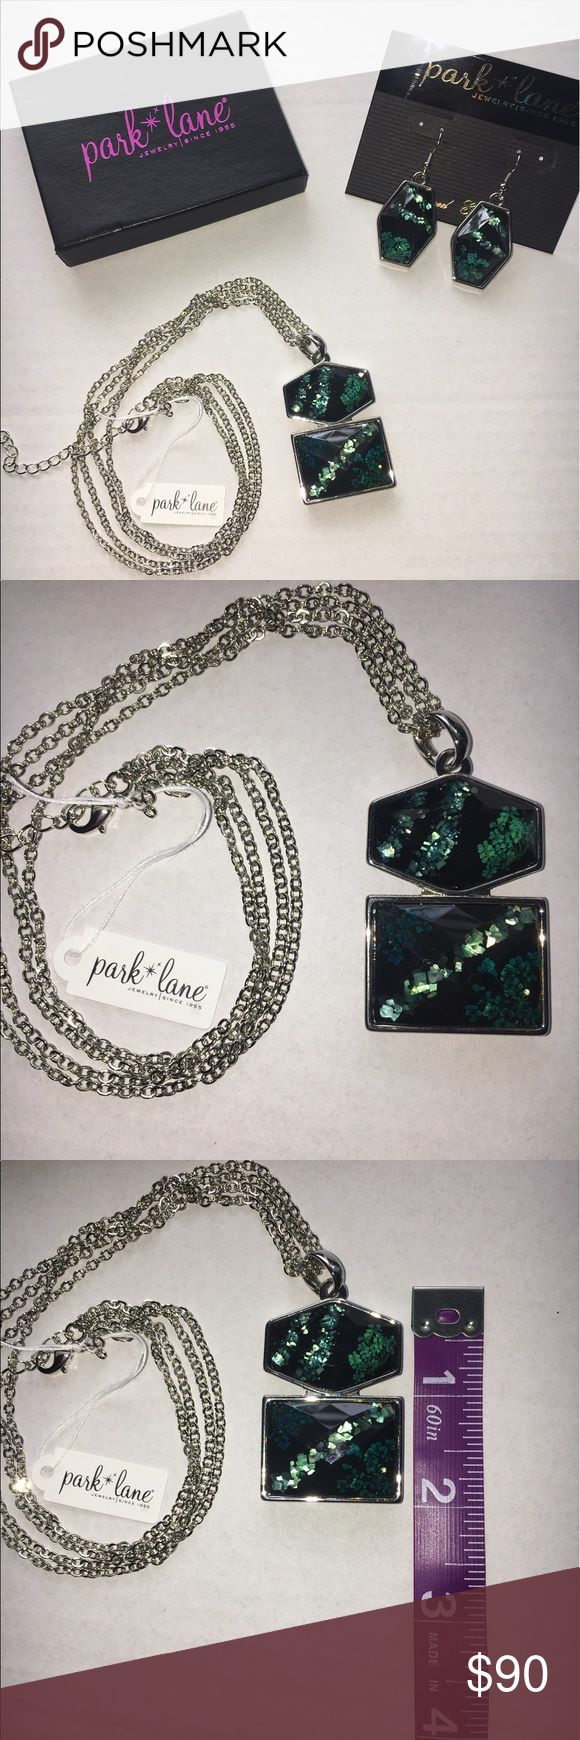 WEEKEND SALE! Park Lane necklace/earring set. NWT. Park Lane necklace and earring set. NWT. Park Lane Jewelry Necklaces